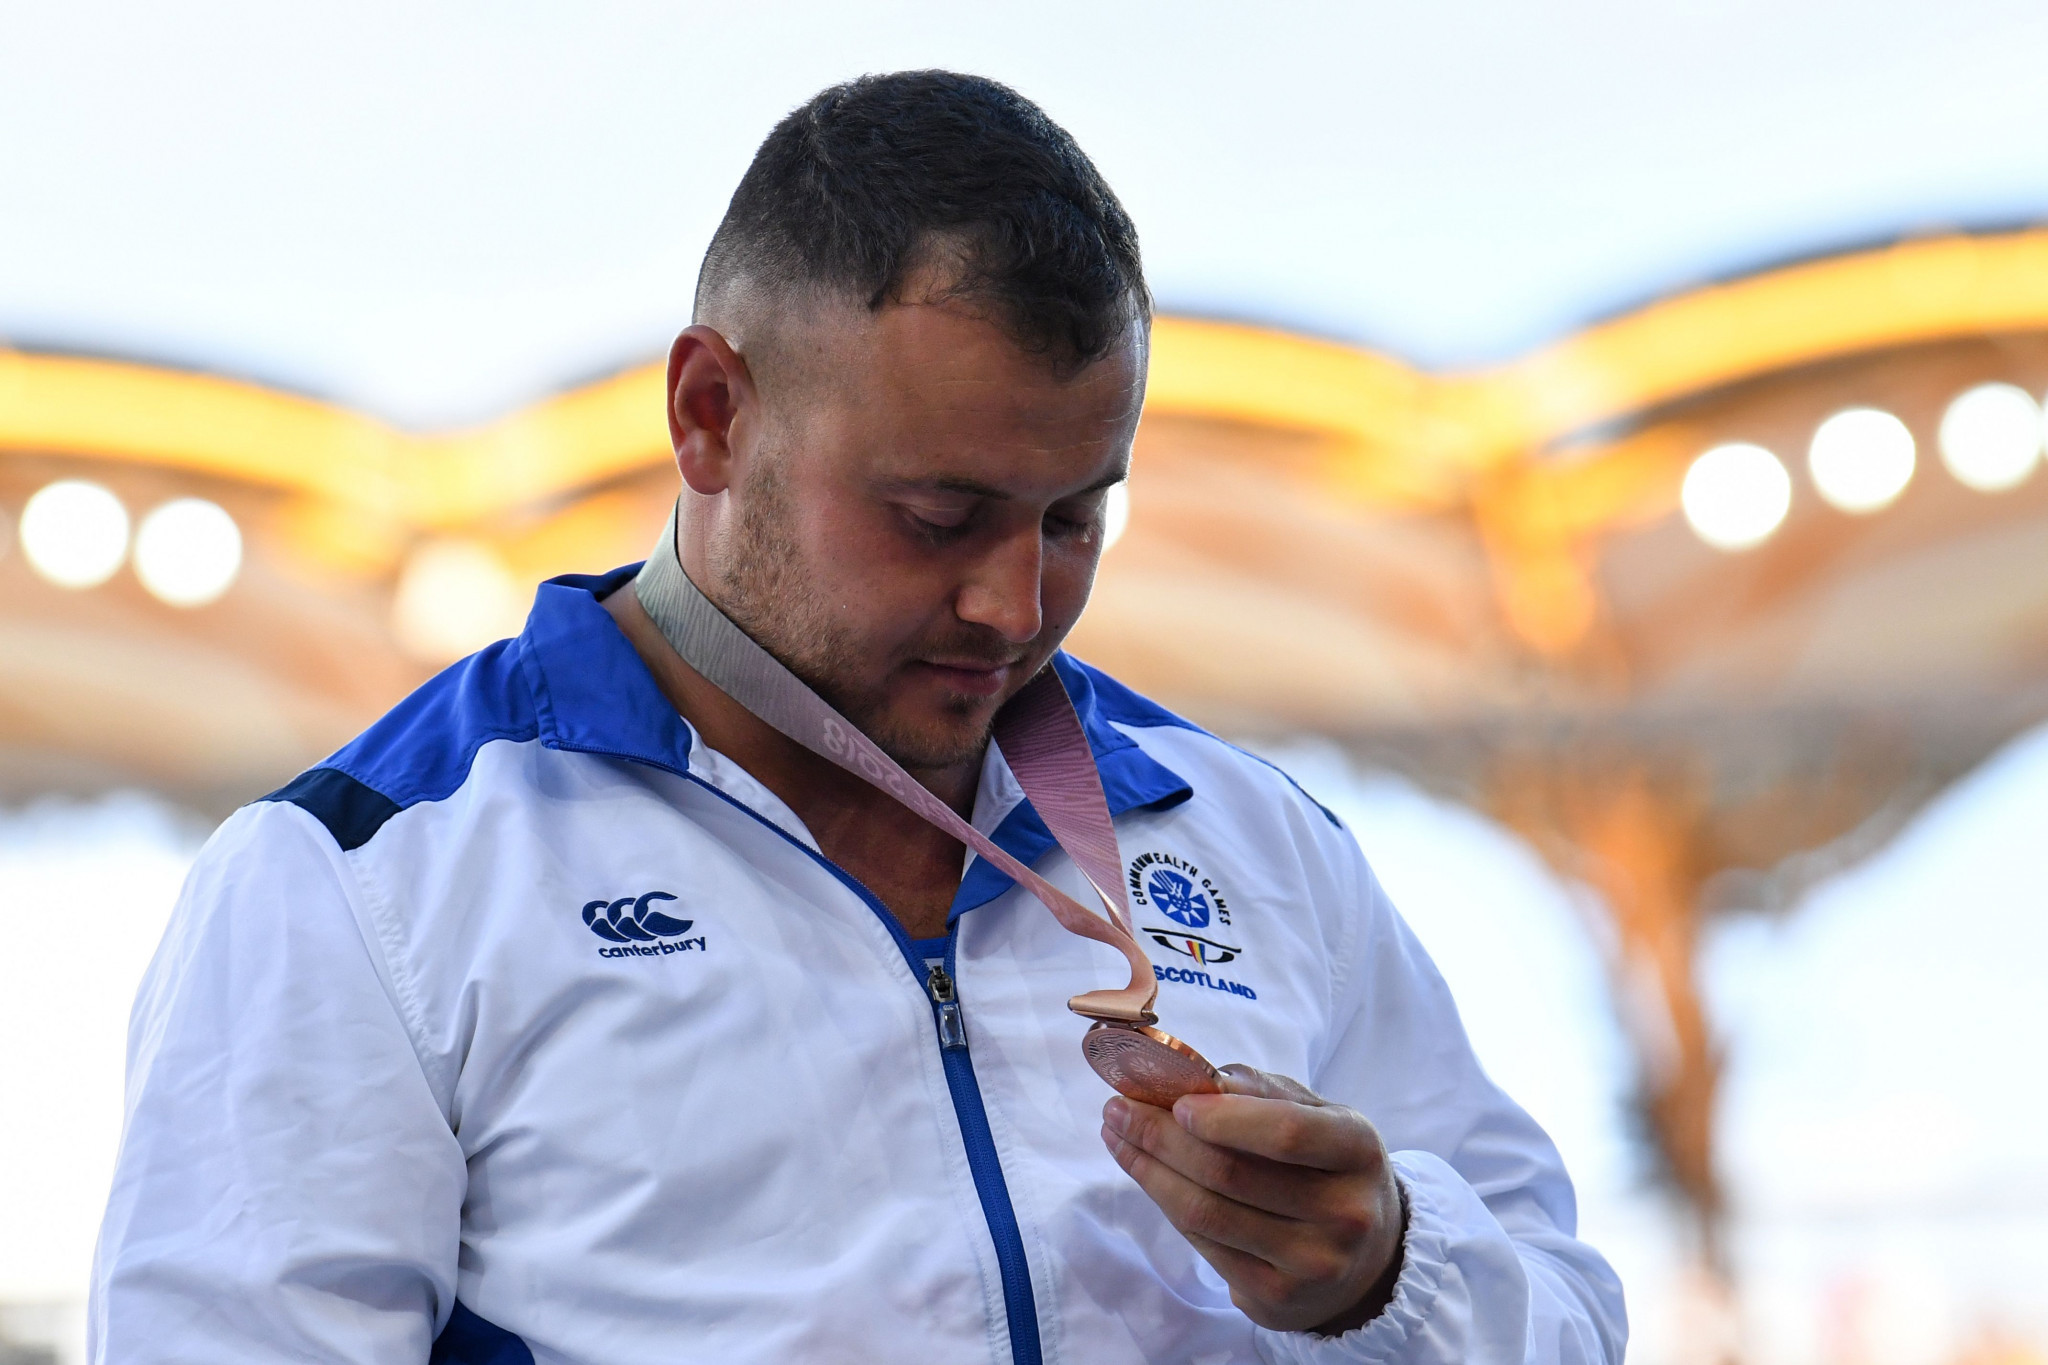 Scottish hammer thrower Mark Dry has bronze medals from the 2014 and 2018 Commonwealth Games ©Getty Images